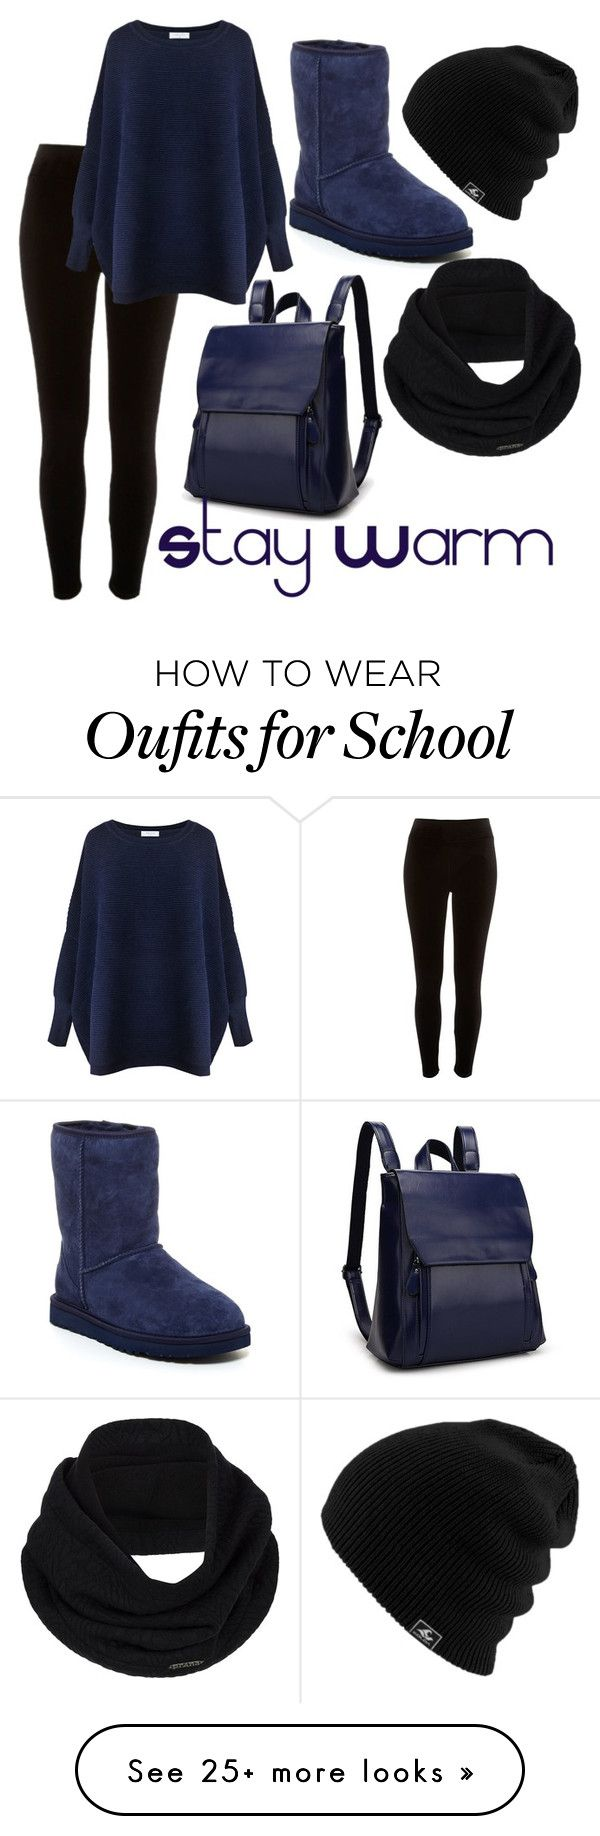 """Must.........Stay .......Warm"" by taoptimist on Polyvore featuring River Island, Paisie, UGG and prAna"